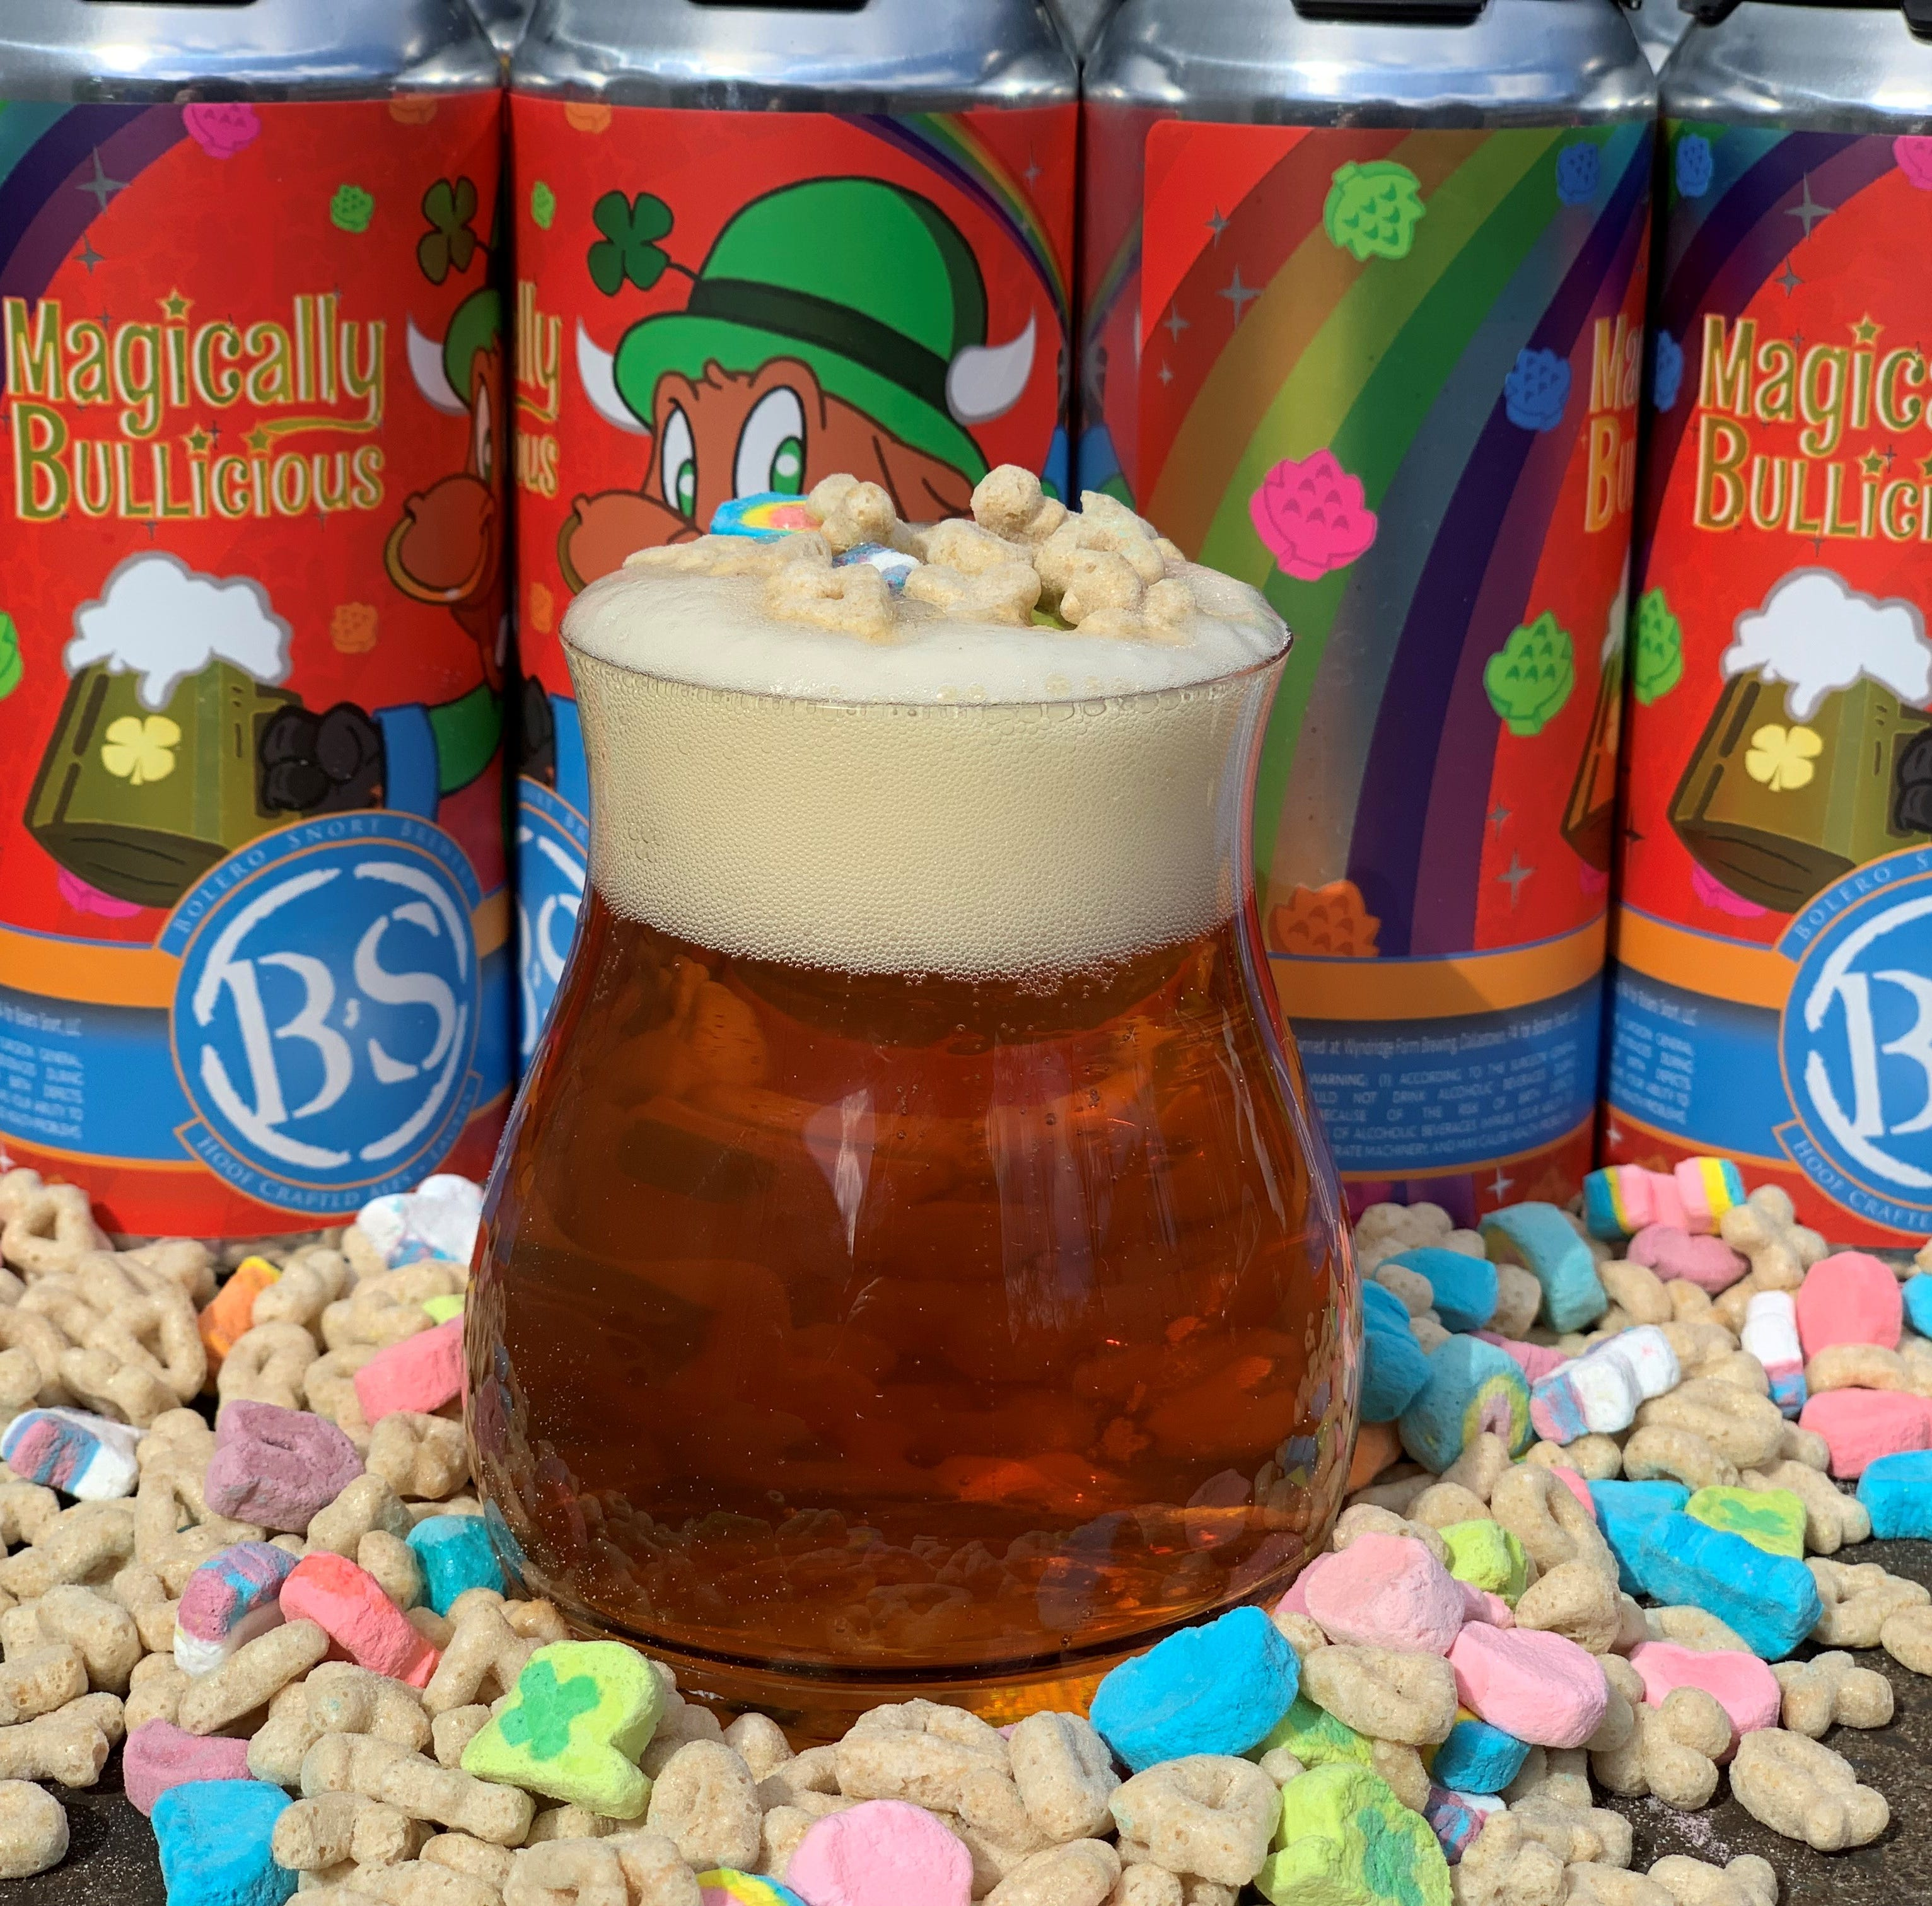 Bolero Snort releases a 'magically delicious' Lucky Charms beer